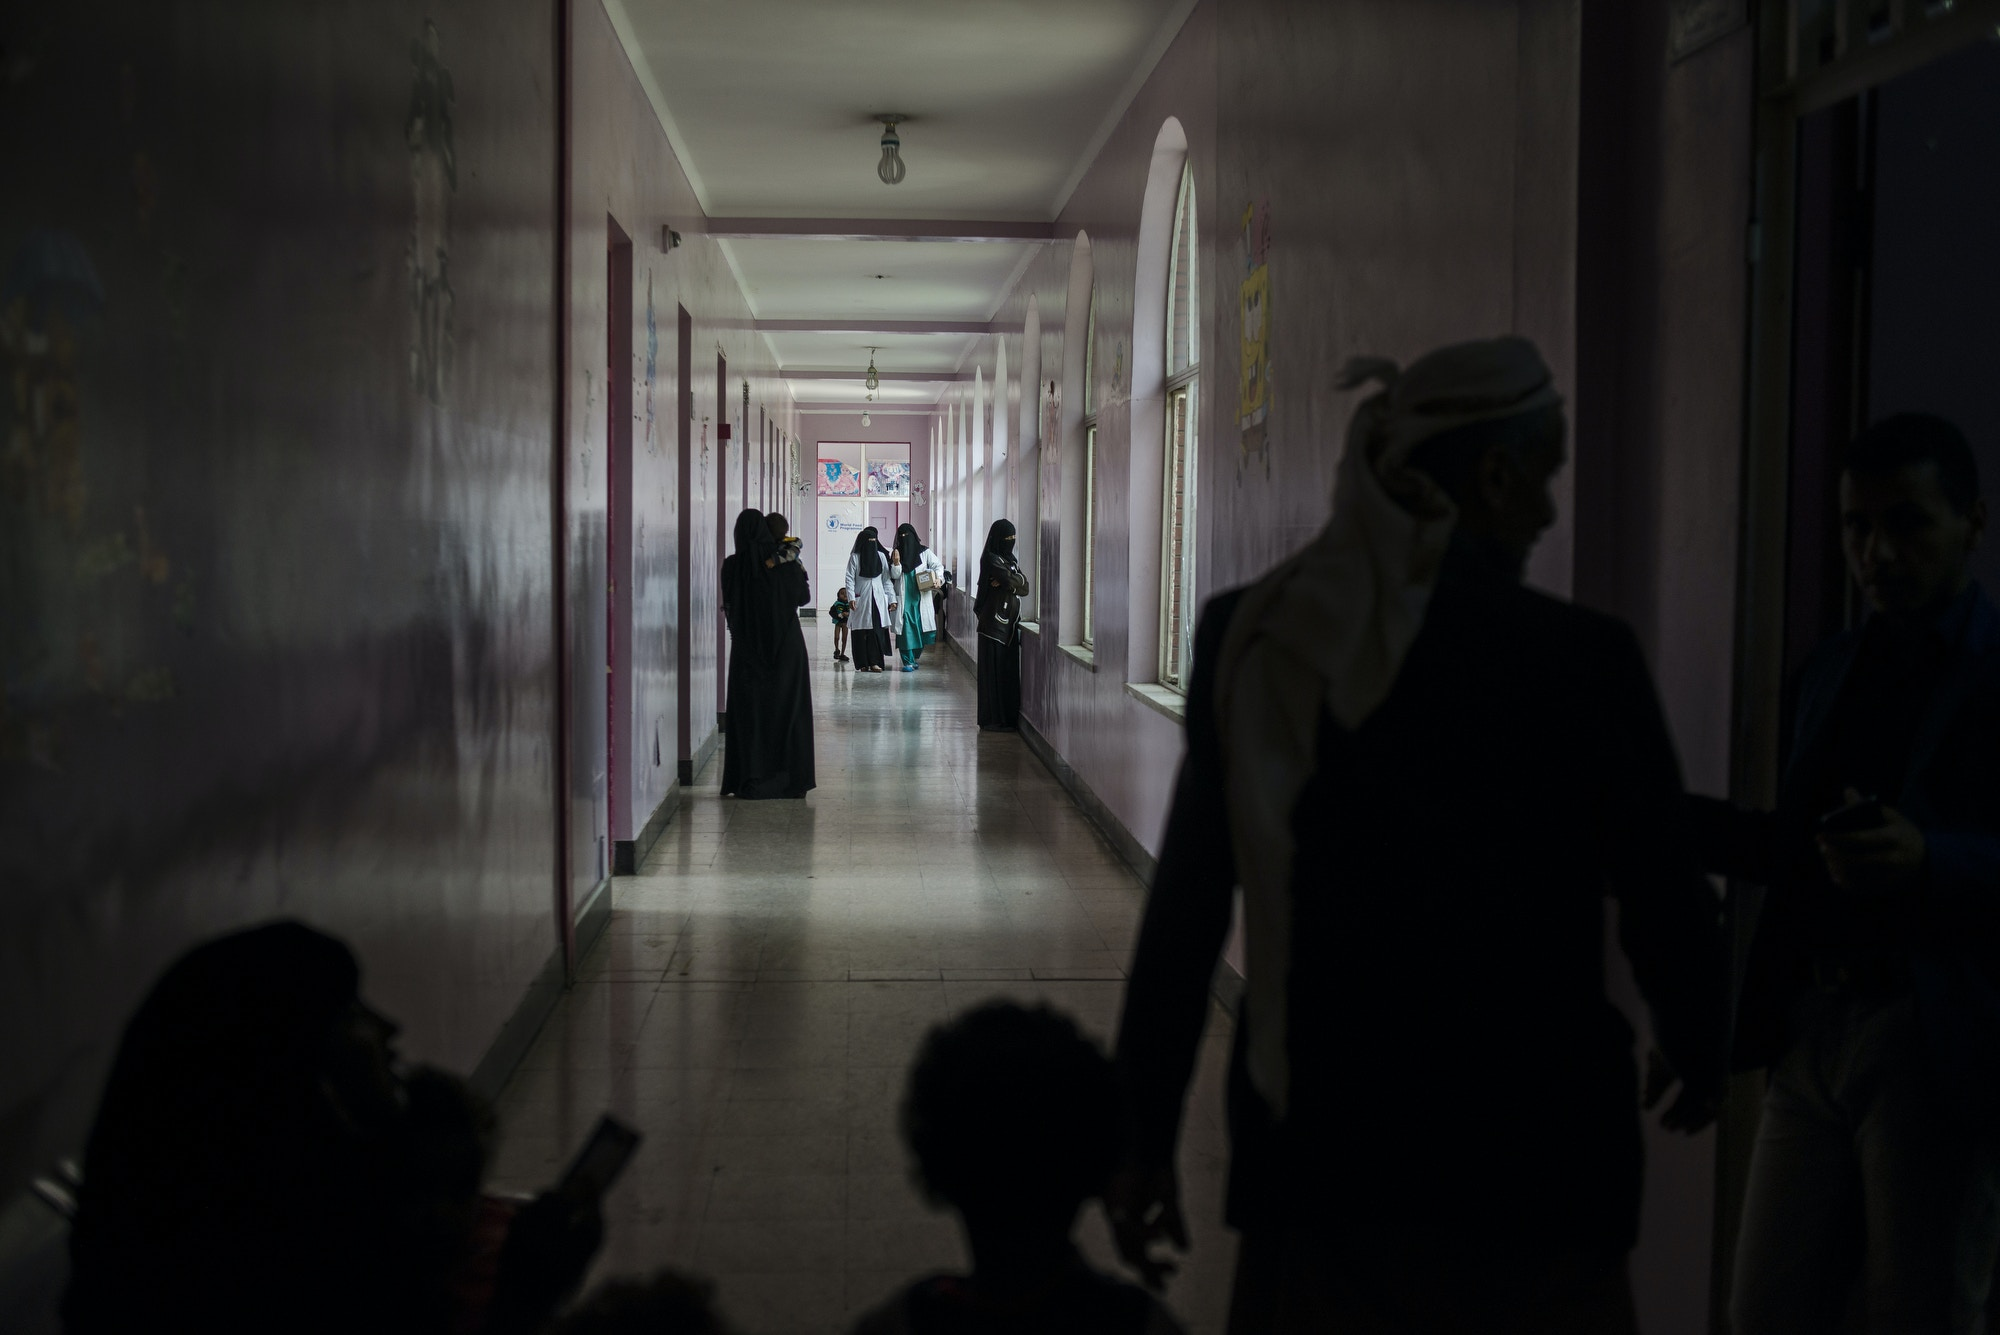 Yemeni families and nurses walk through the malnutrition wing at Sabaeen Hospital in Sanaa on May 4, 2018. Most hospitals in the north are functioning at a minimal levels, constantly short on supplies, while their staff have remained unpaid for months. Photo: Alex Potter for The Intercept